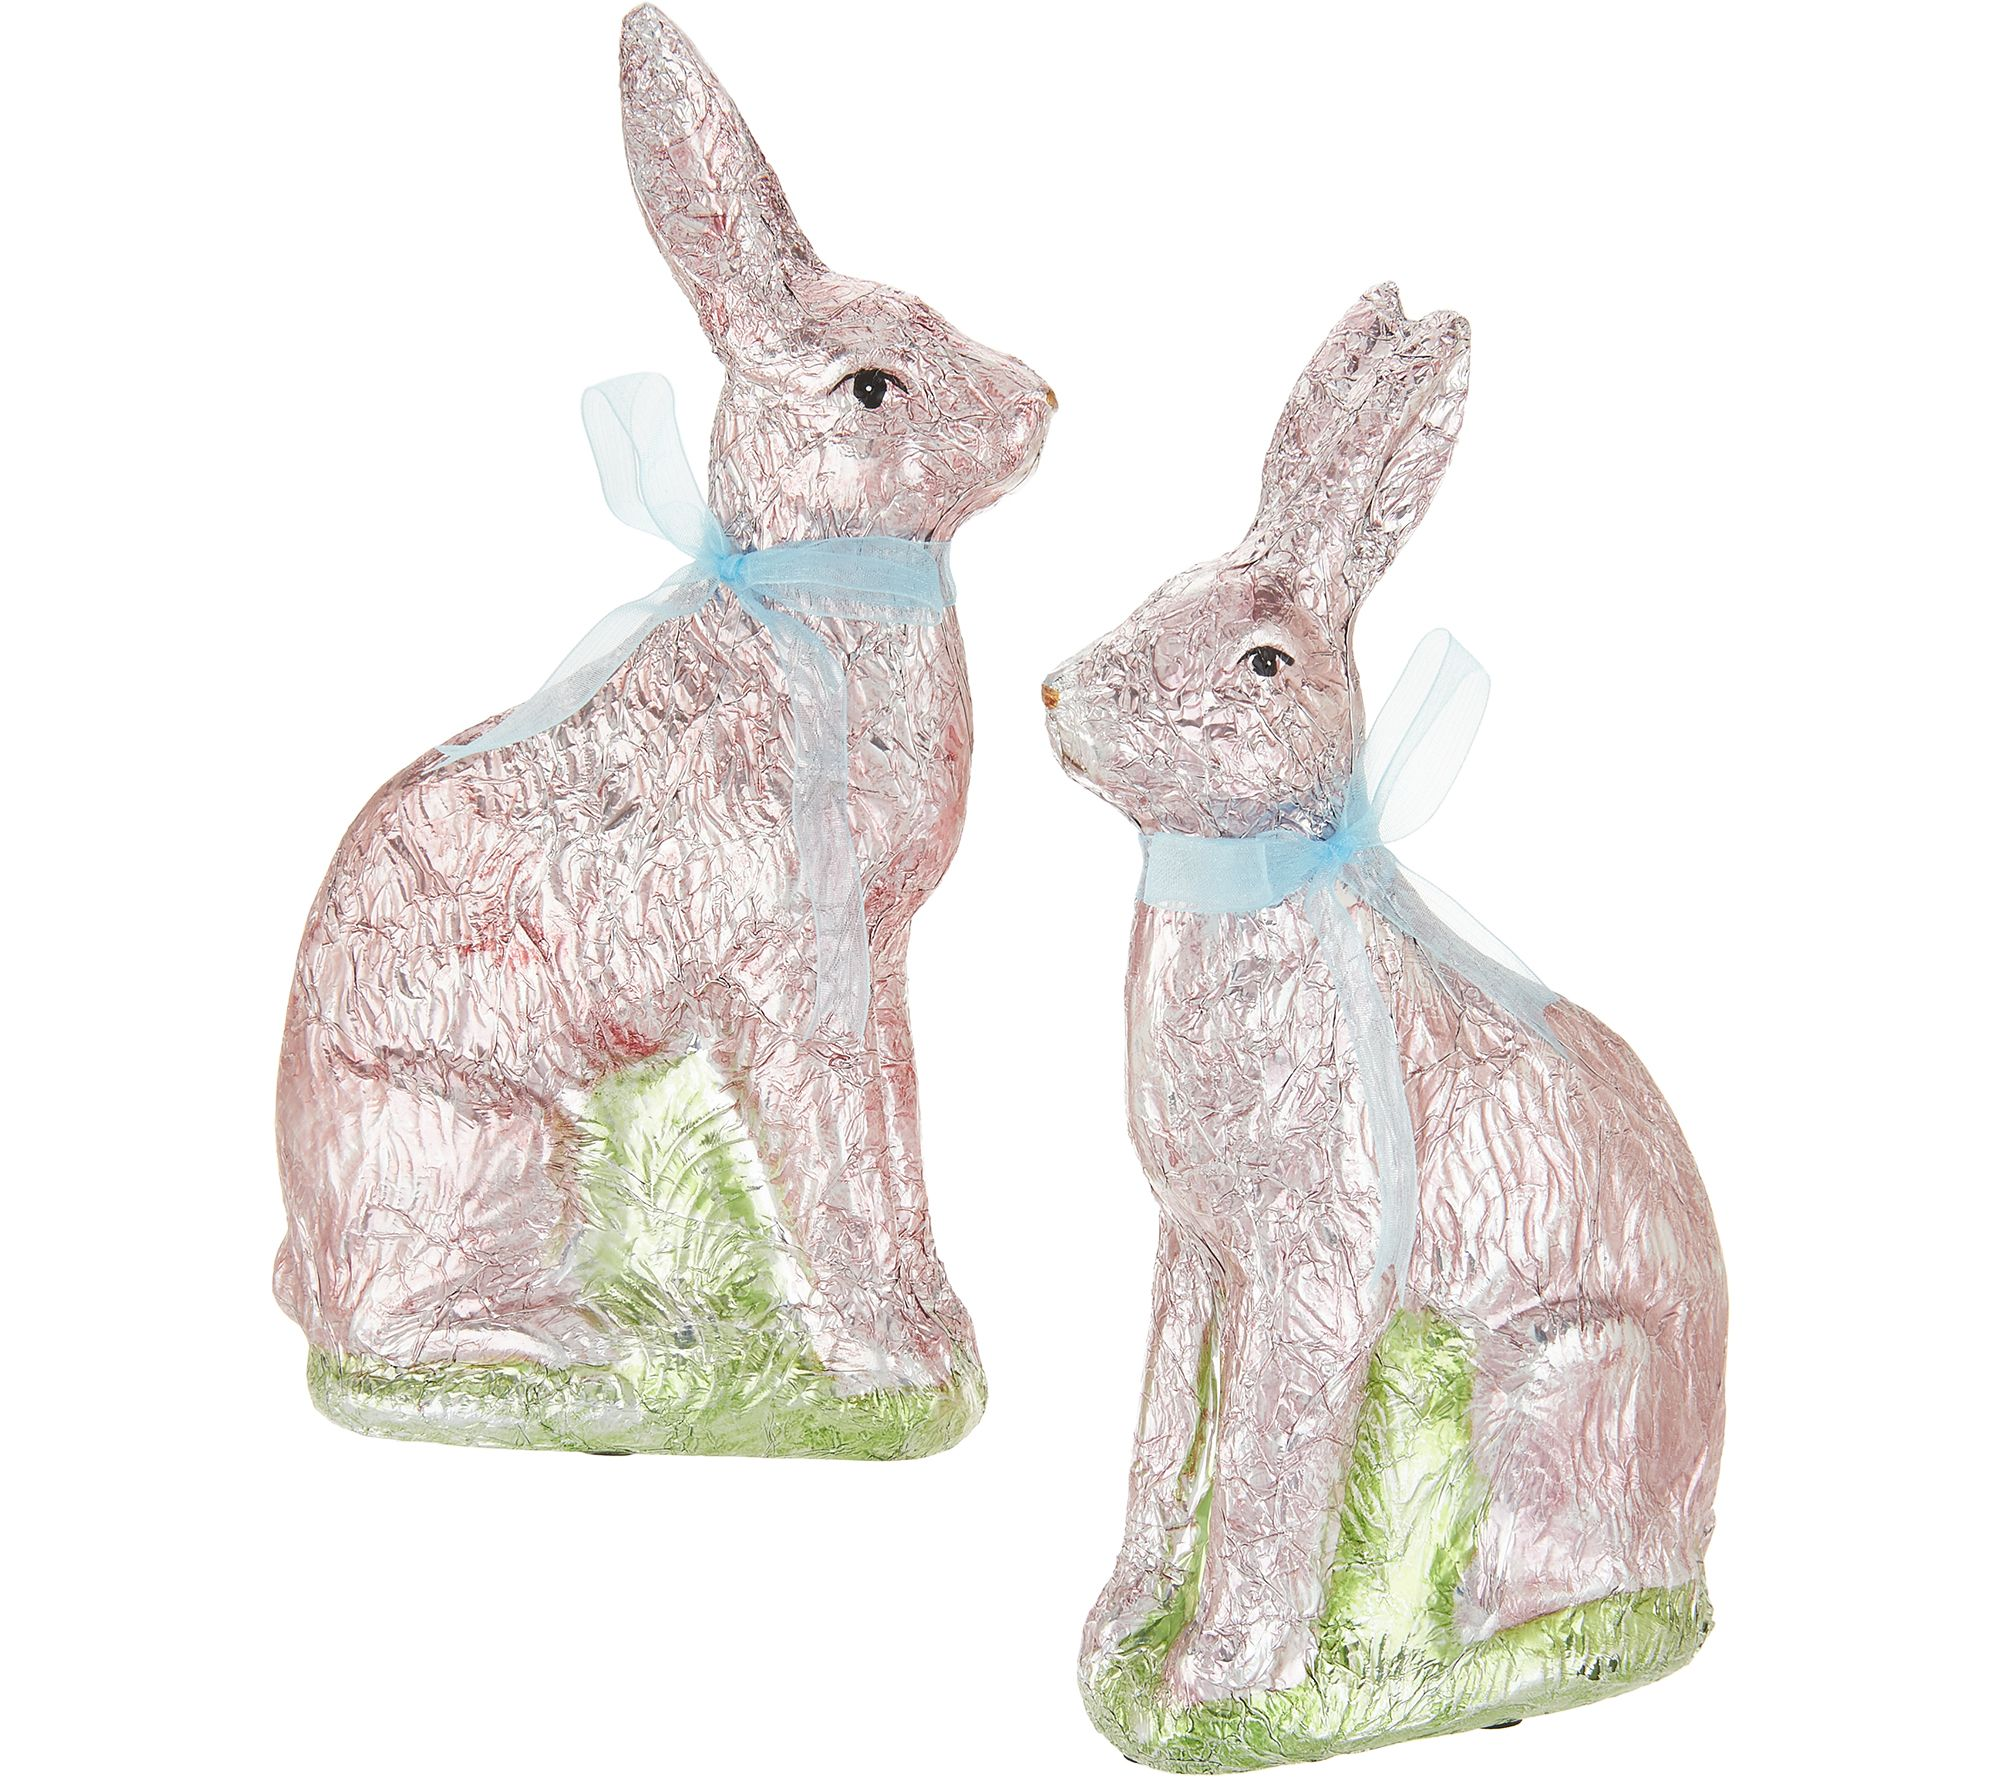 Spring easter dcor qvc set of 2 9 foil wrapped bunnies by valerie h213770 negle Choice Image